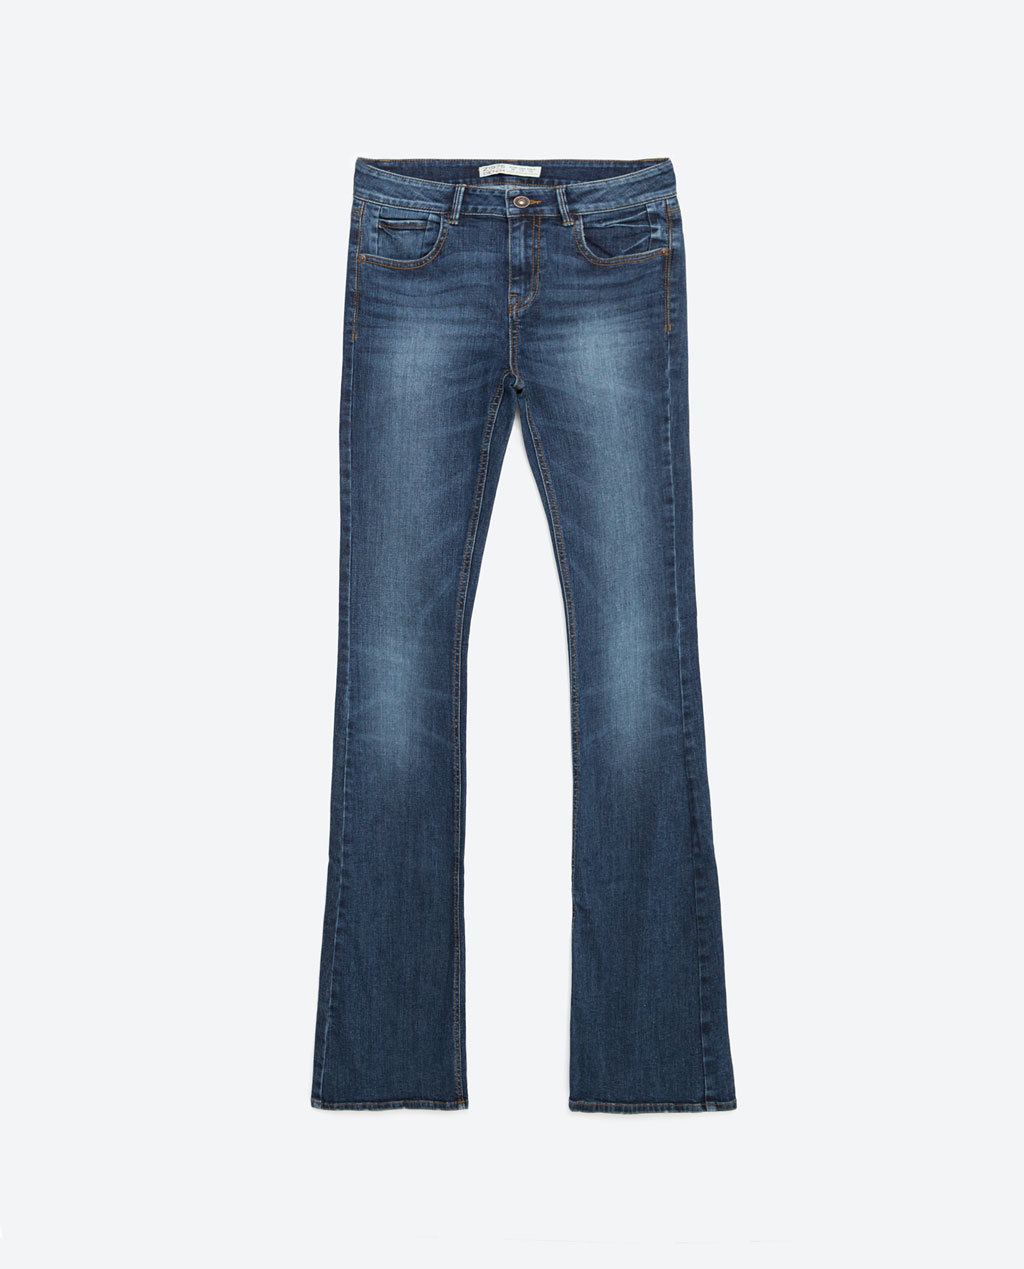 Mid Rise Flared Jeans - style: flares; length: standard; pattern: plain; waist: mid/regular rise; predominant colour: denim; occasions: casual; fibres: cotton - stretch; jeans detail: shading down centre of thigh; texture group: denim; pattern type: fabric; season: s/s 2016